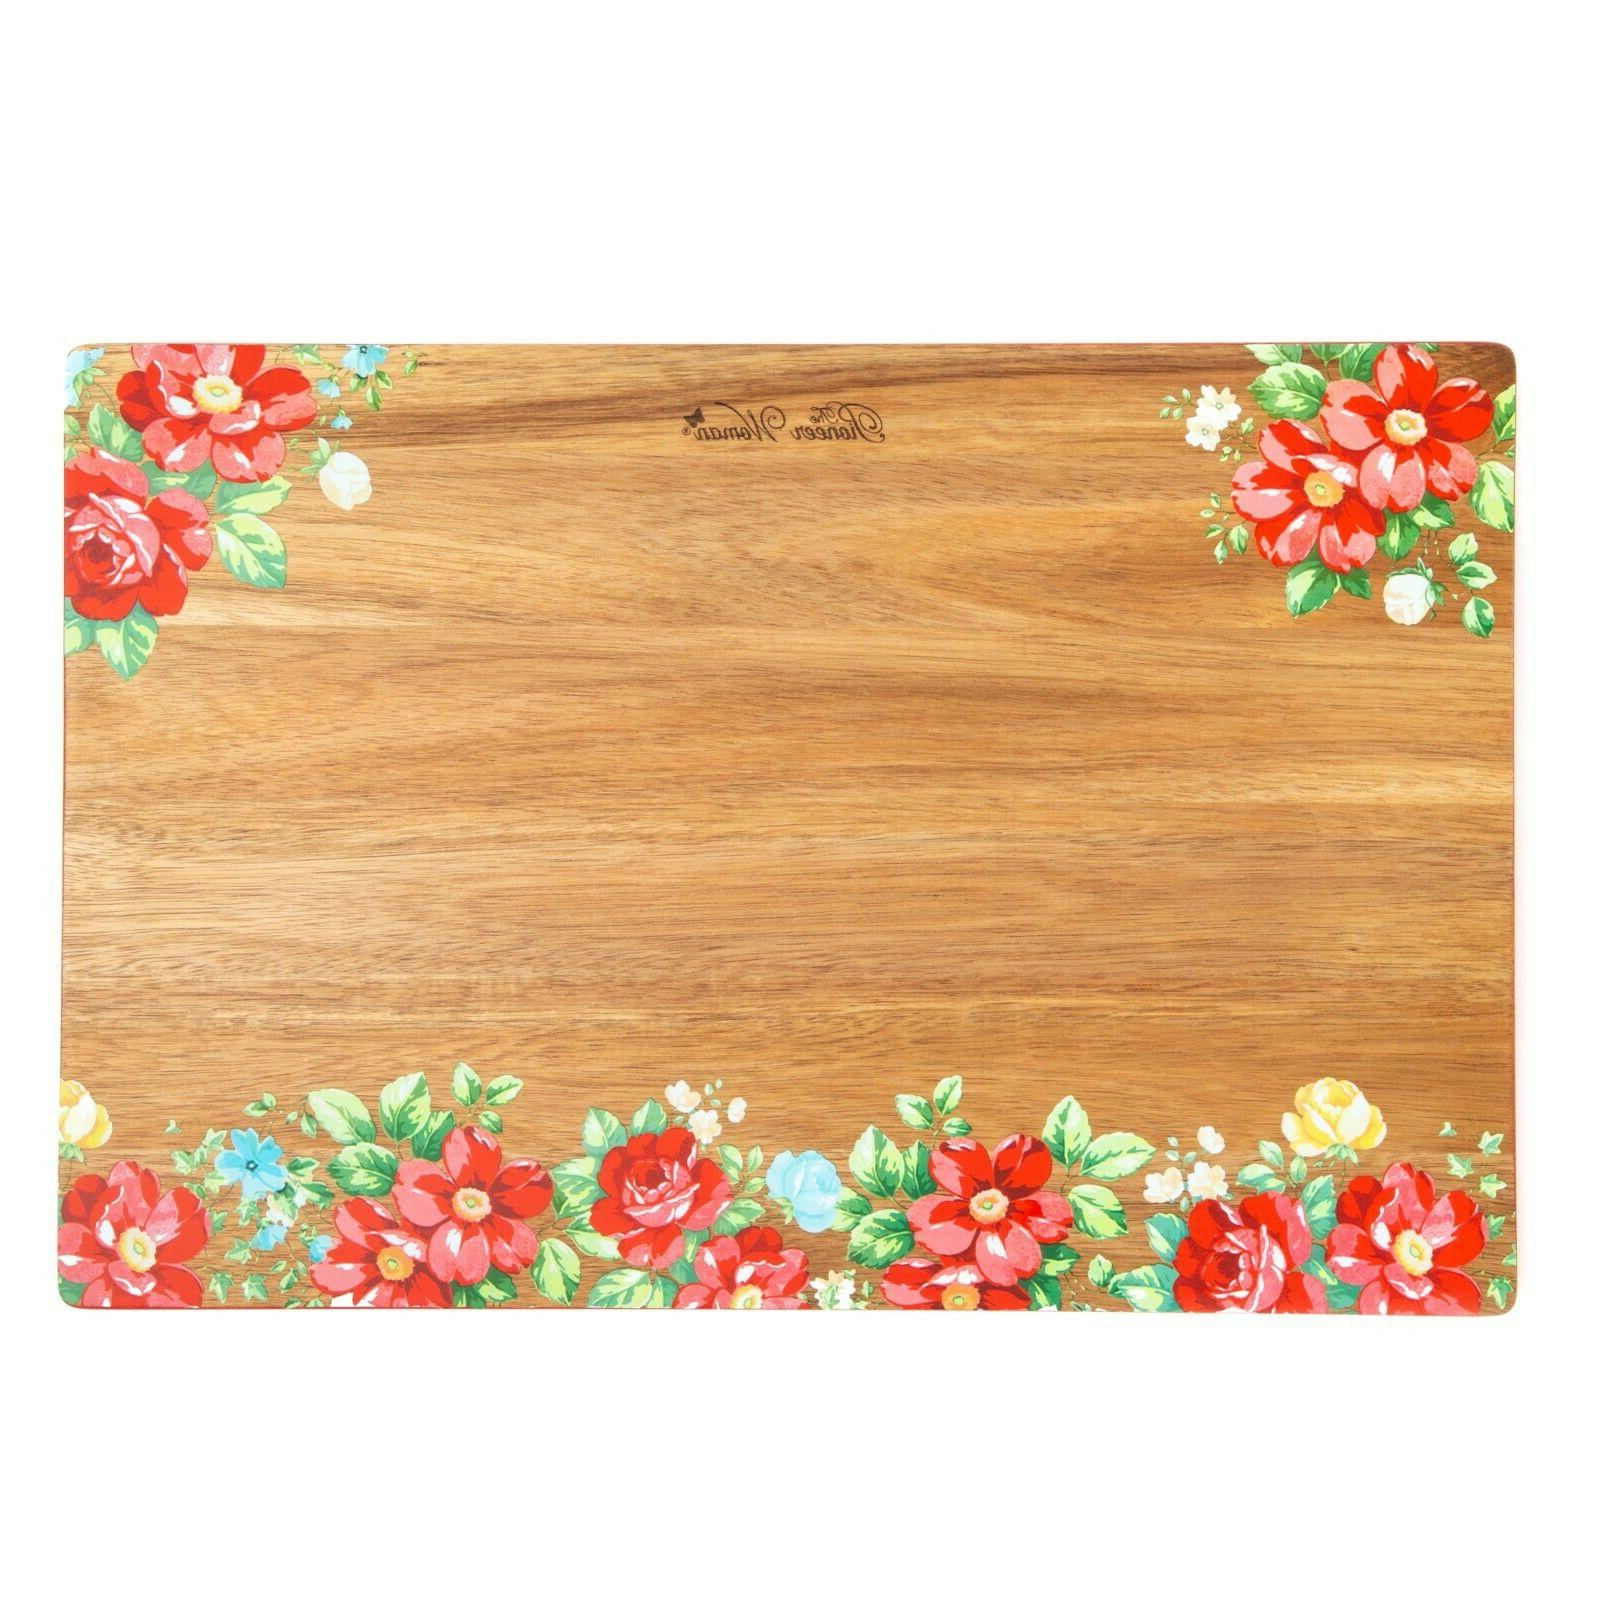 The Pioneer Woman Spring Floral Acacia Wood Cutting Board 12